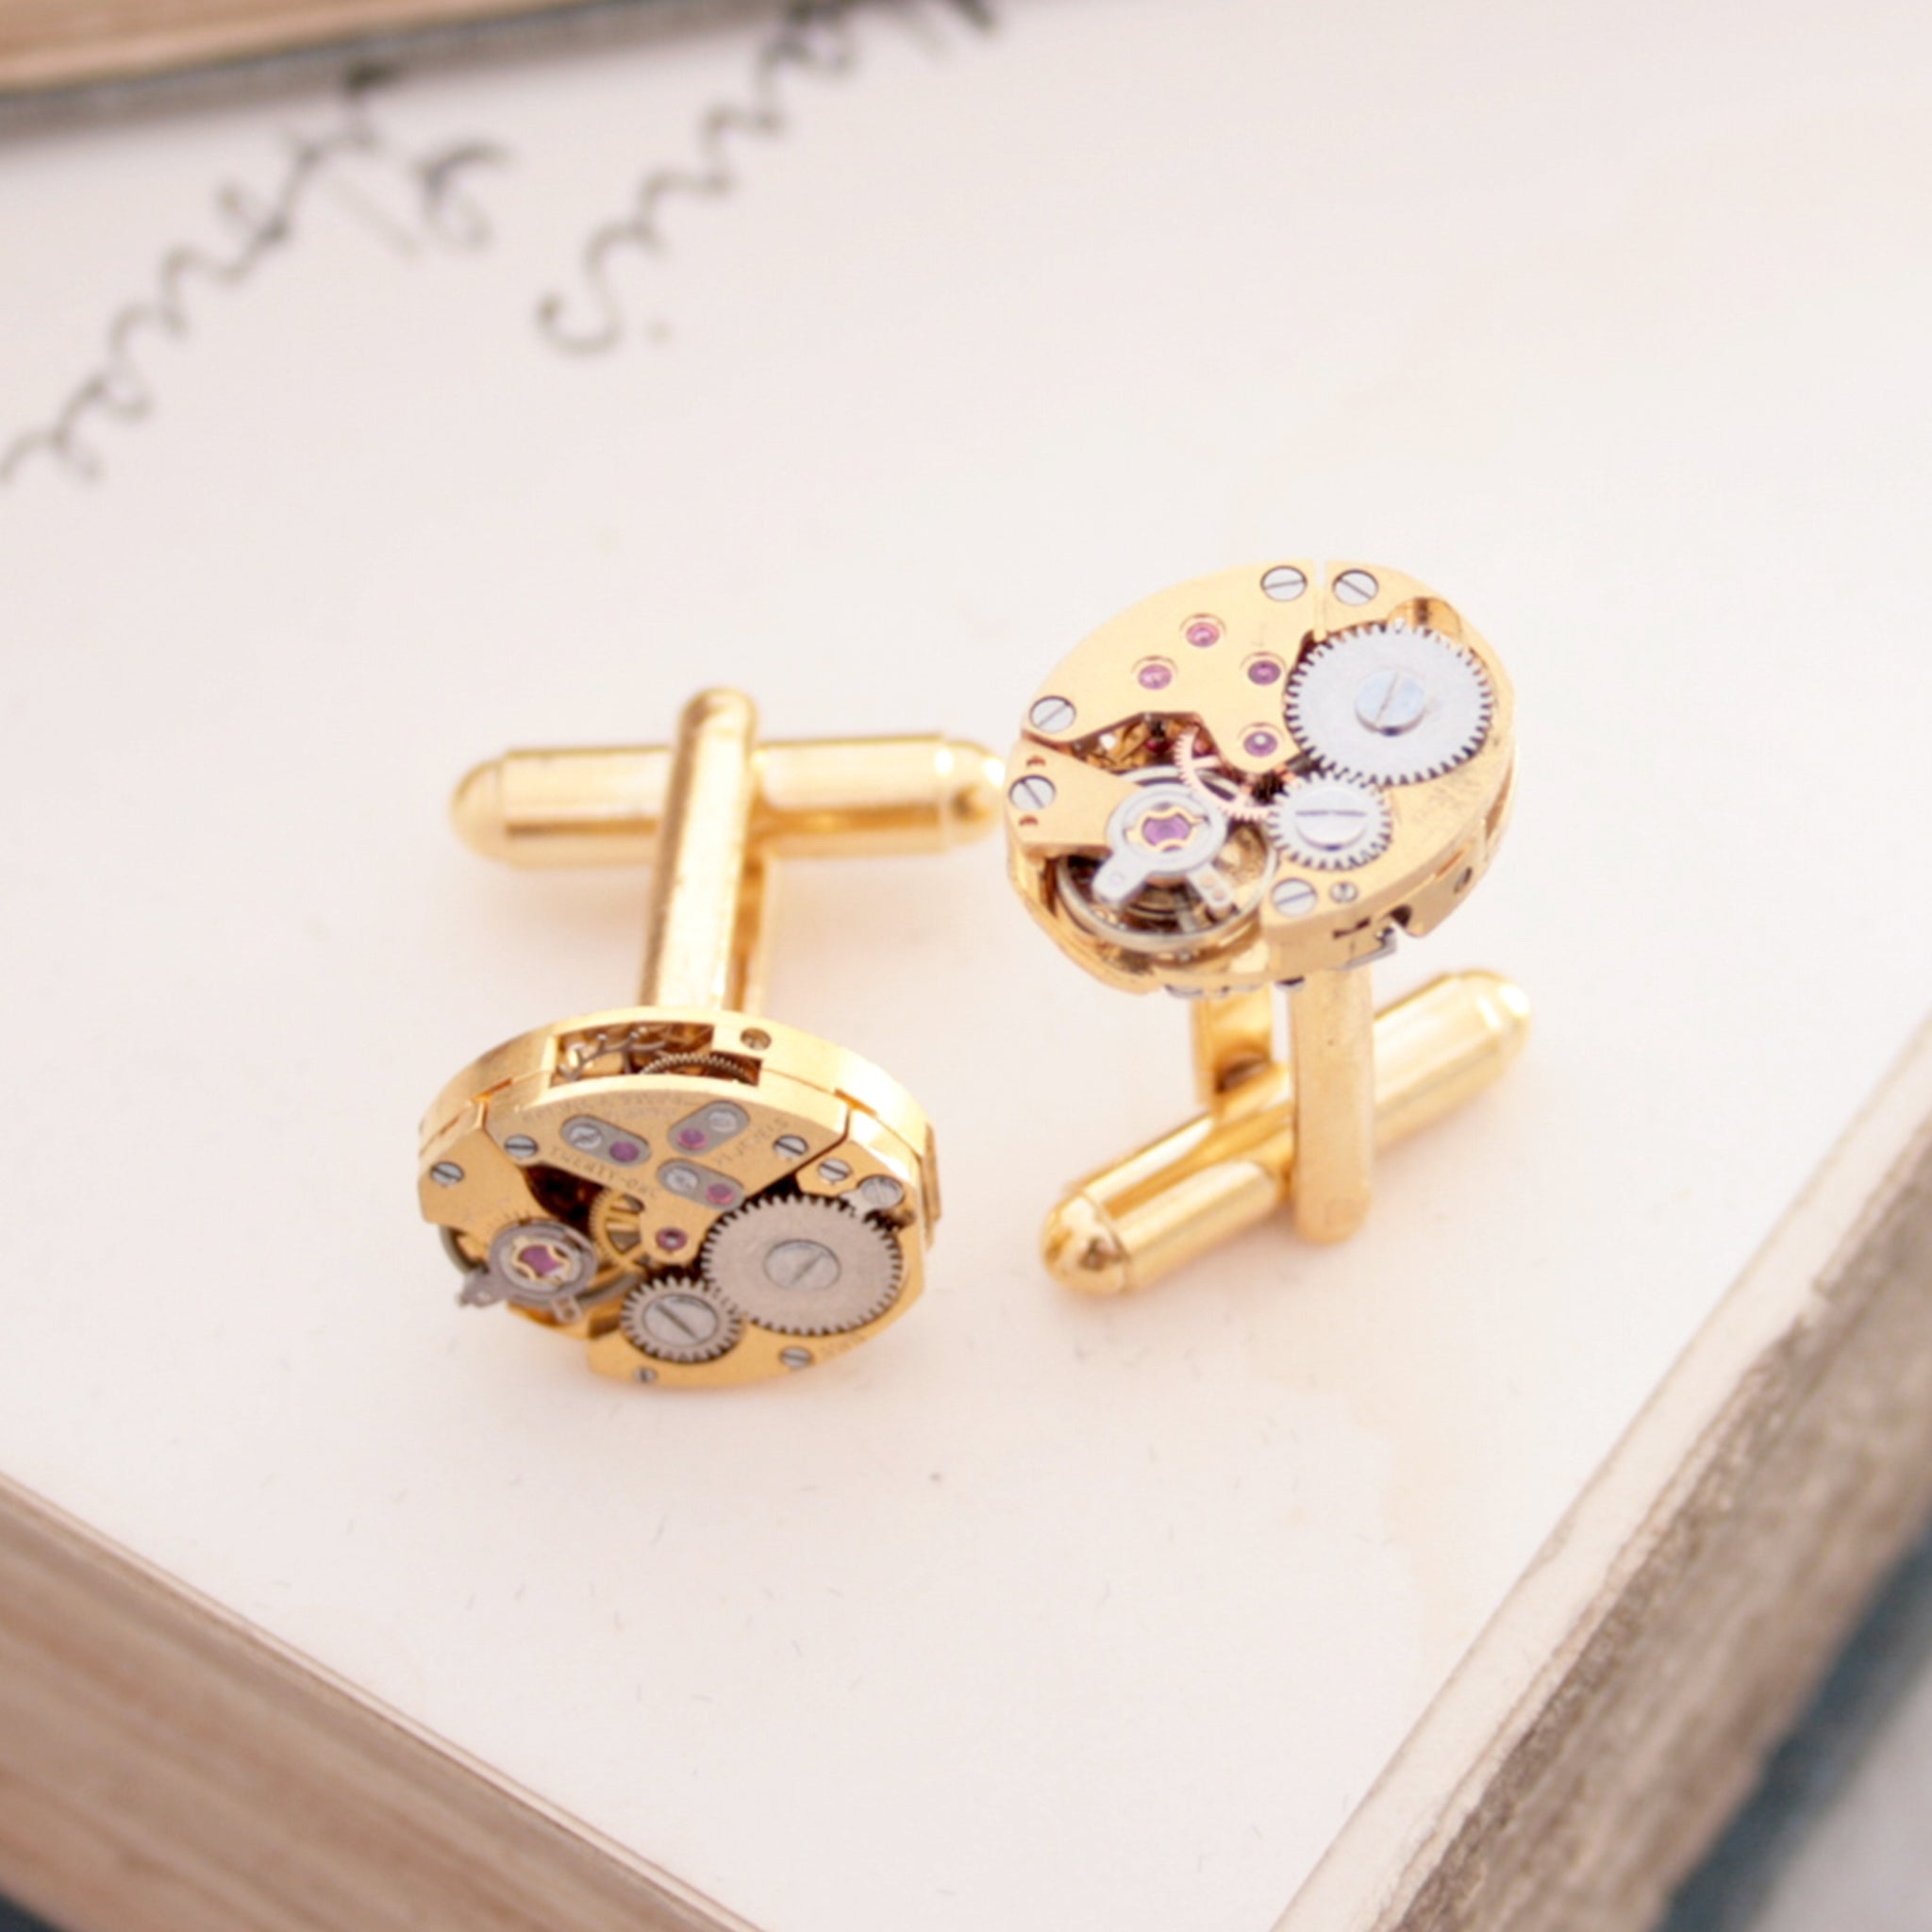 Gold Watch Cufflinks made of Rotary watch movements